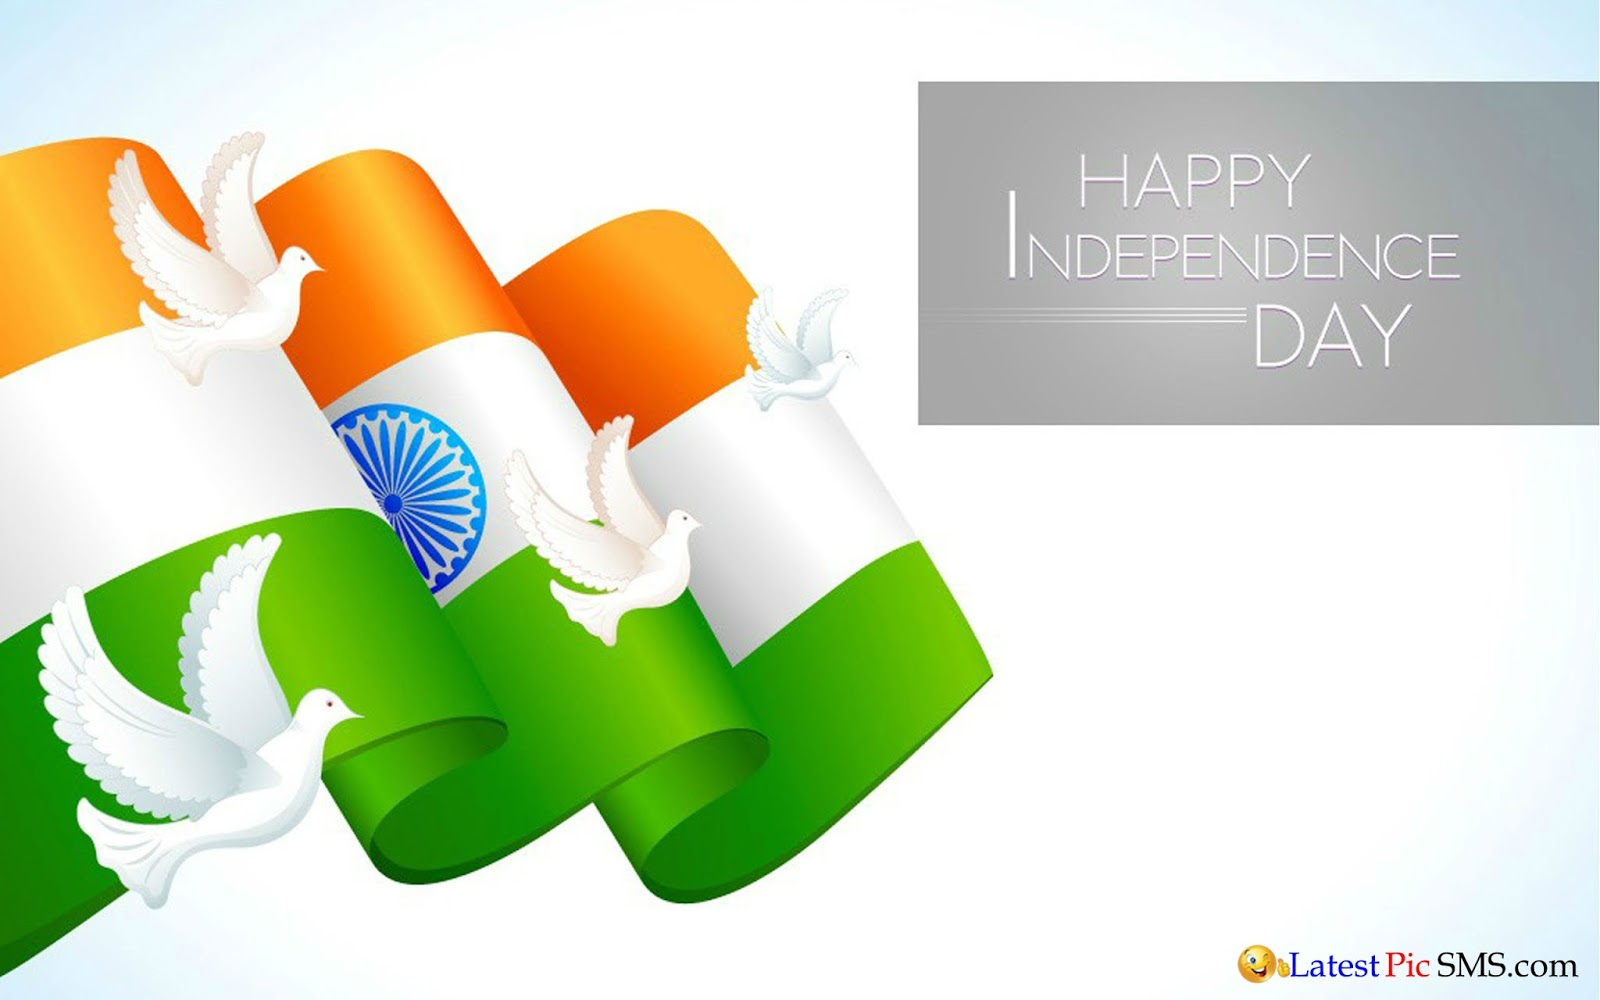 Happy Independence Day Images with Birds for Facebook